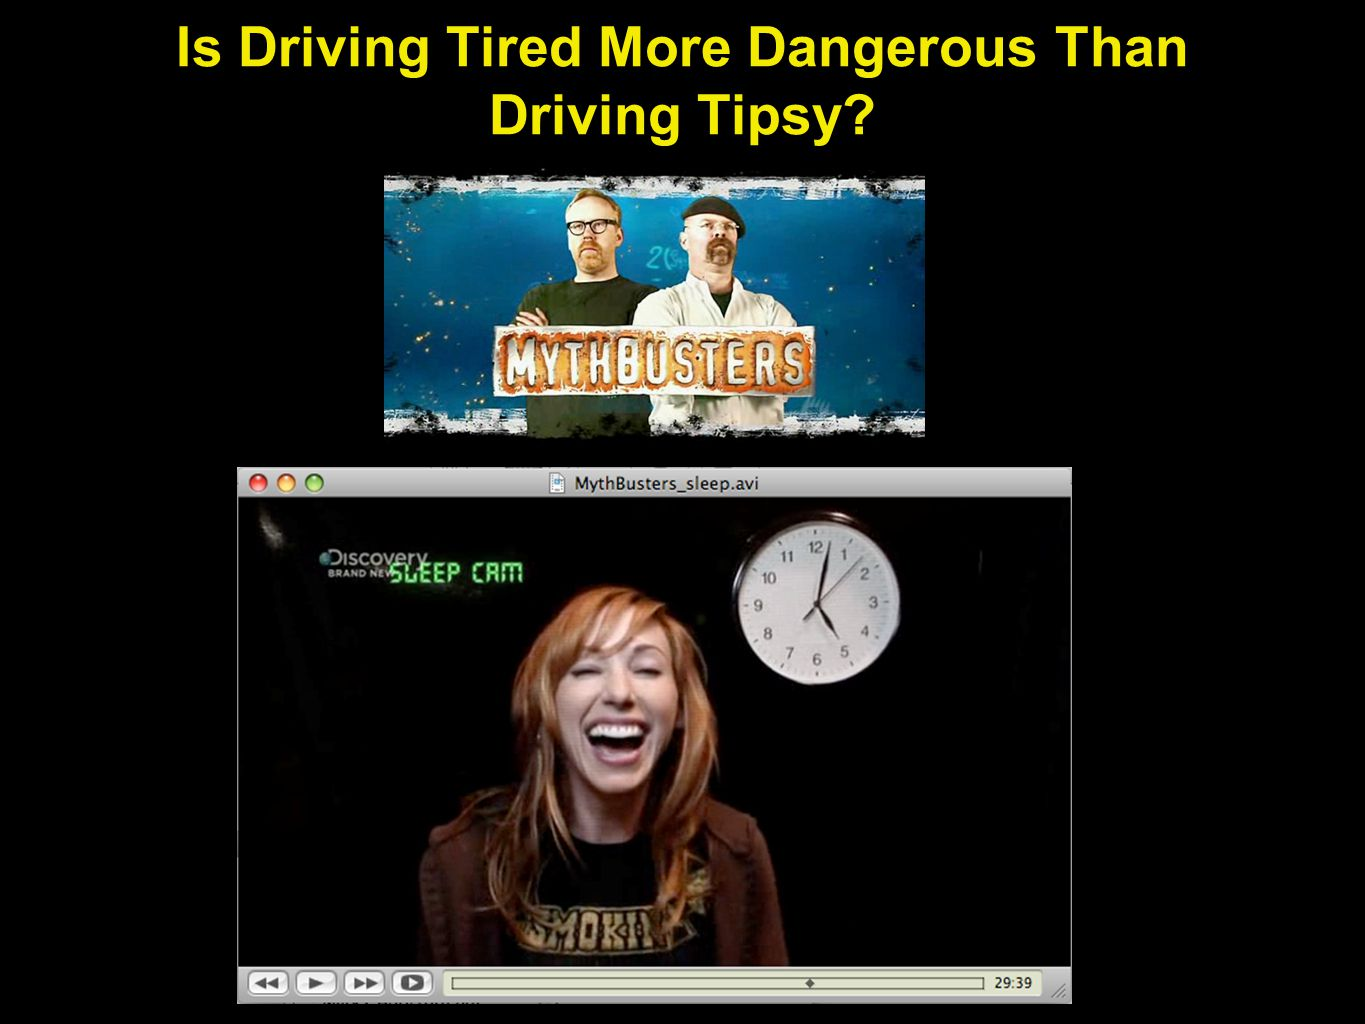 Is Driving Tired More Dangerous Than Driving Tipsy?